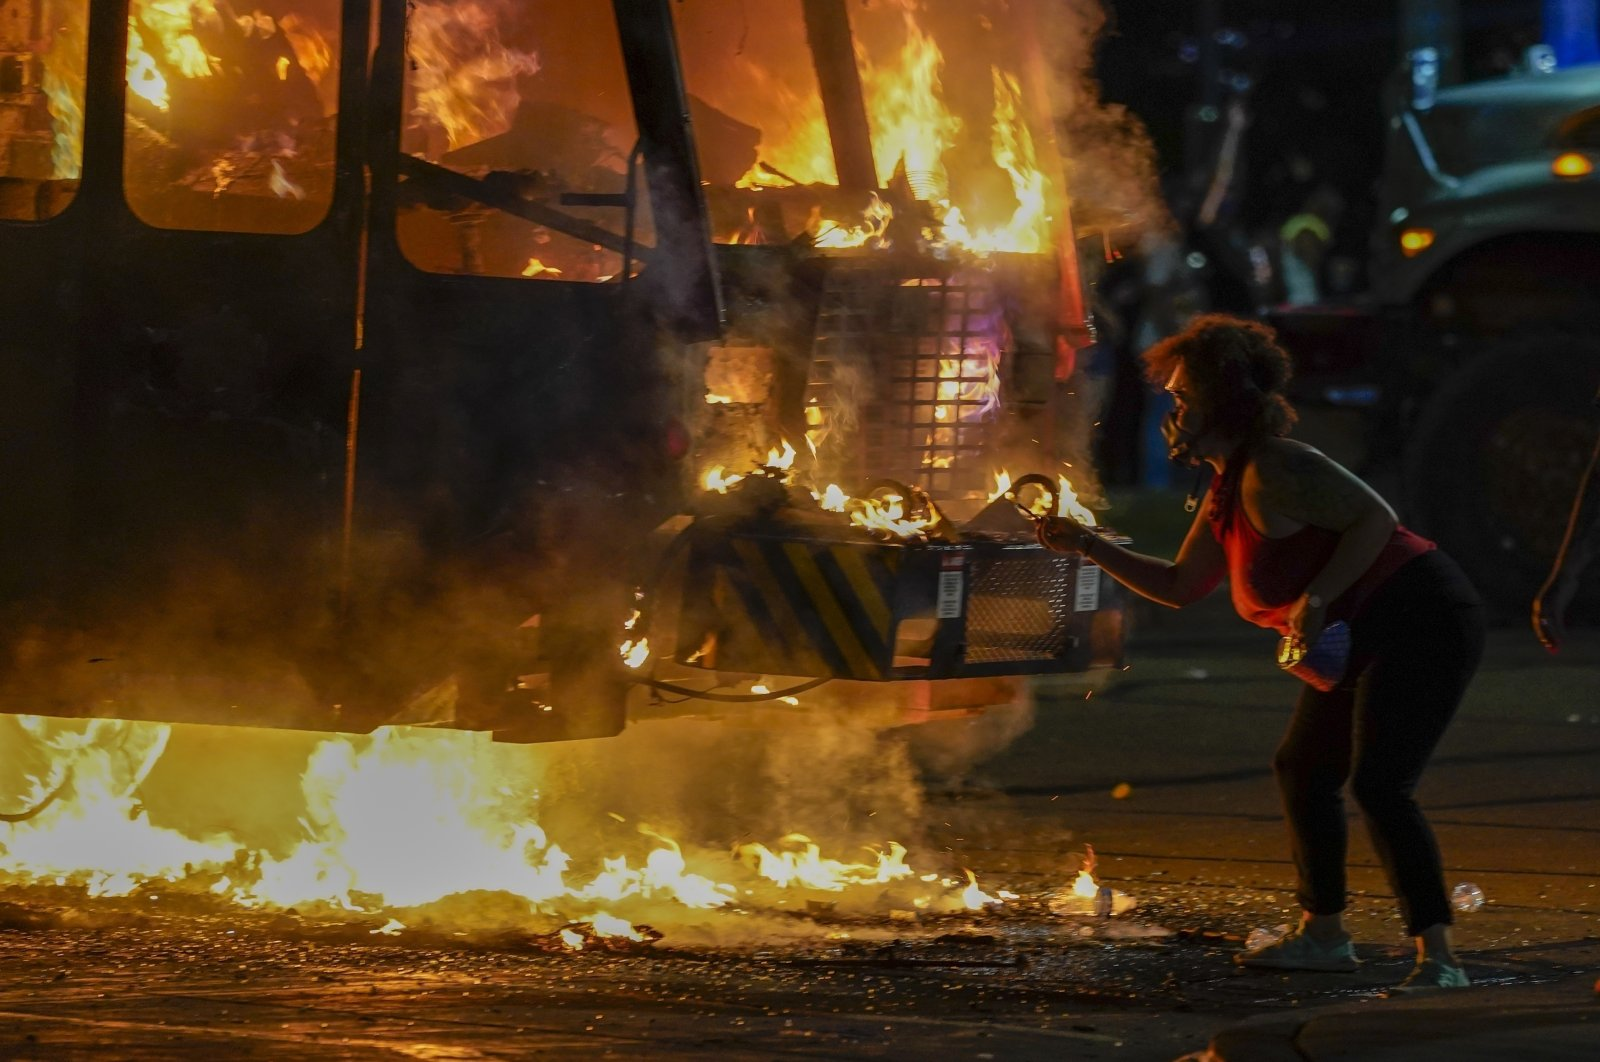 A protester lights a cigarette on a garbage truck that was set on fire during protests in Kenosha, Aug. 24, 2020.(AP Photo)